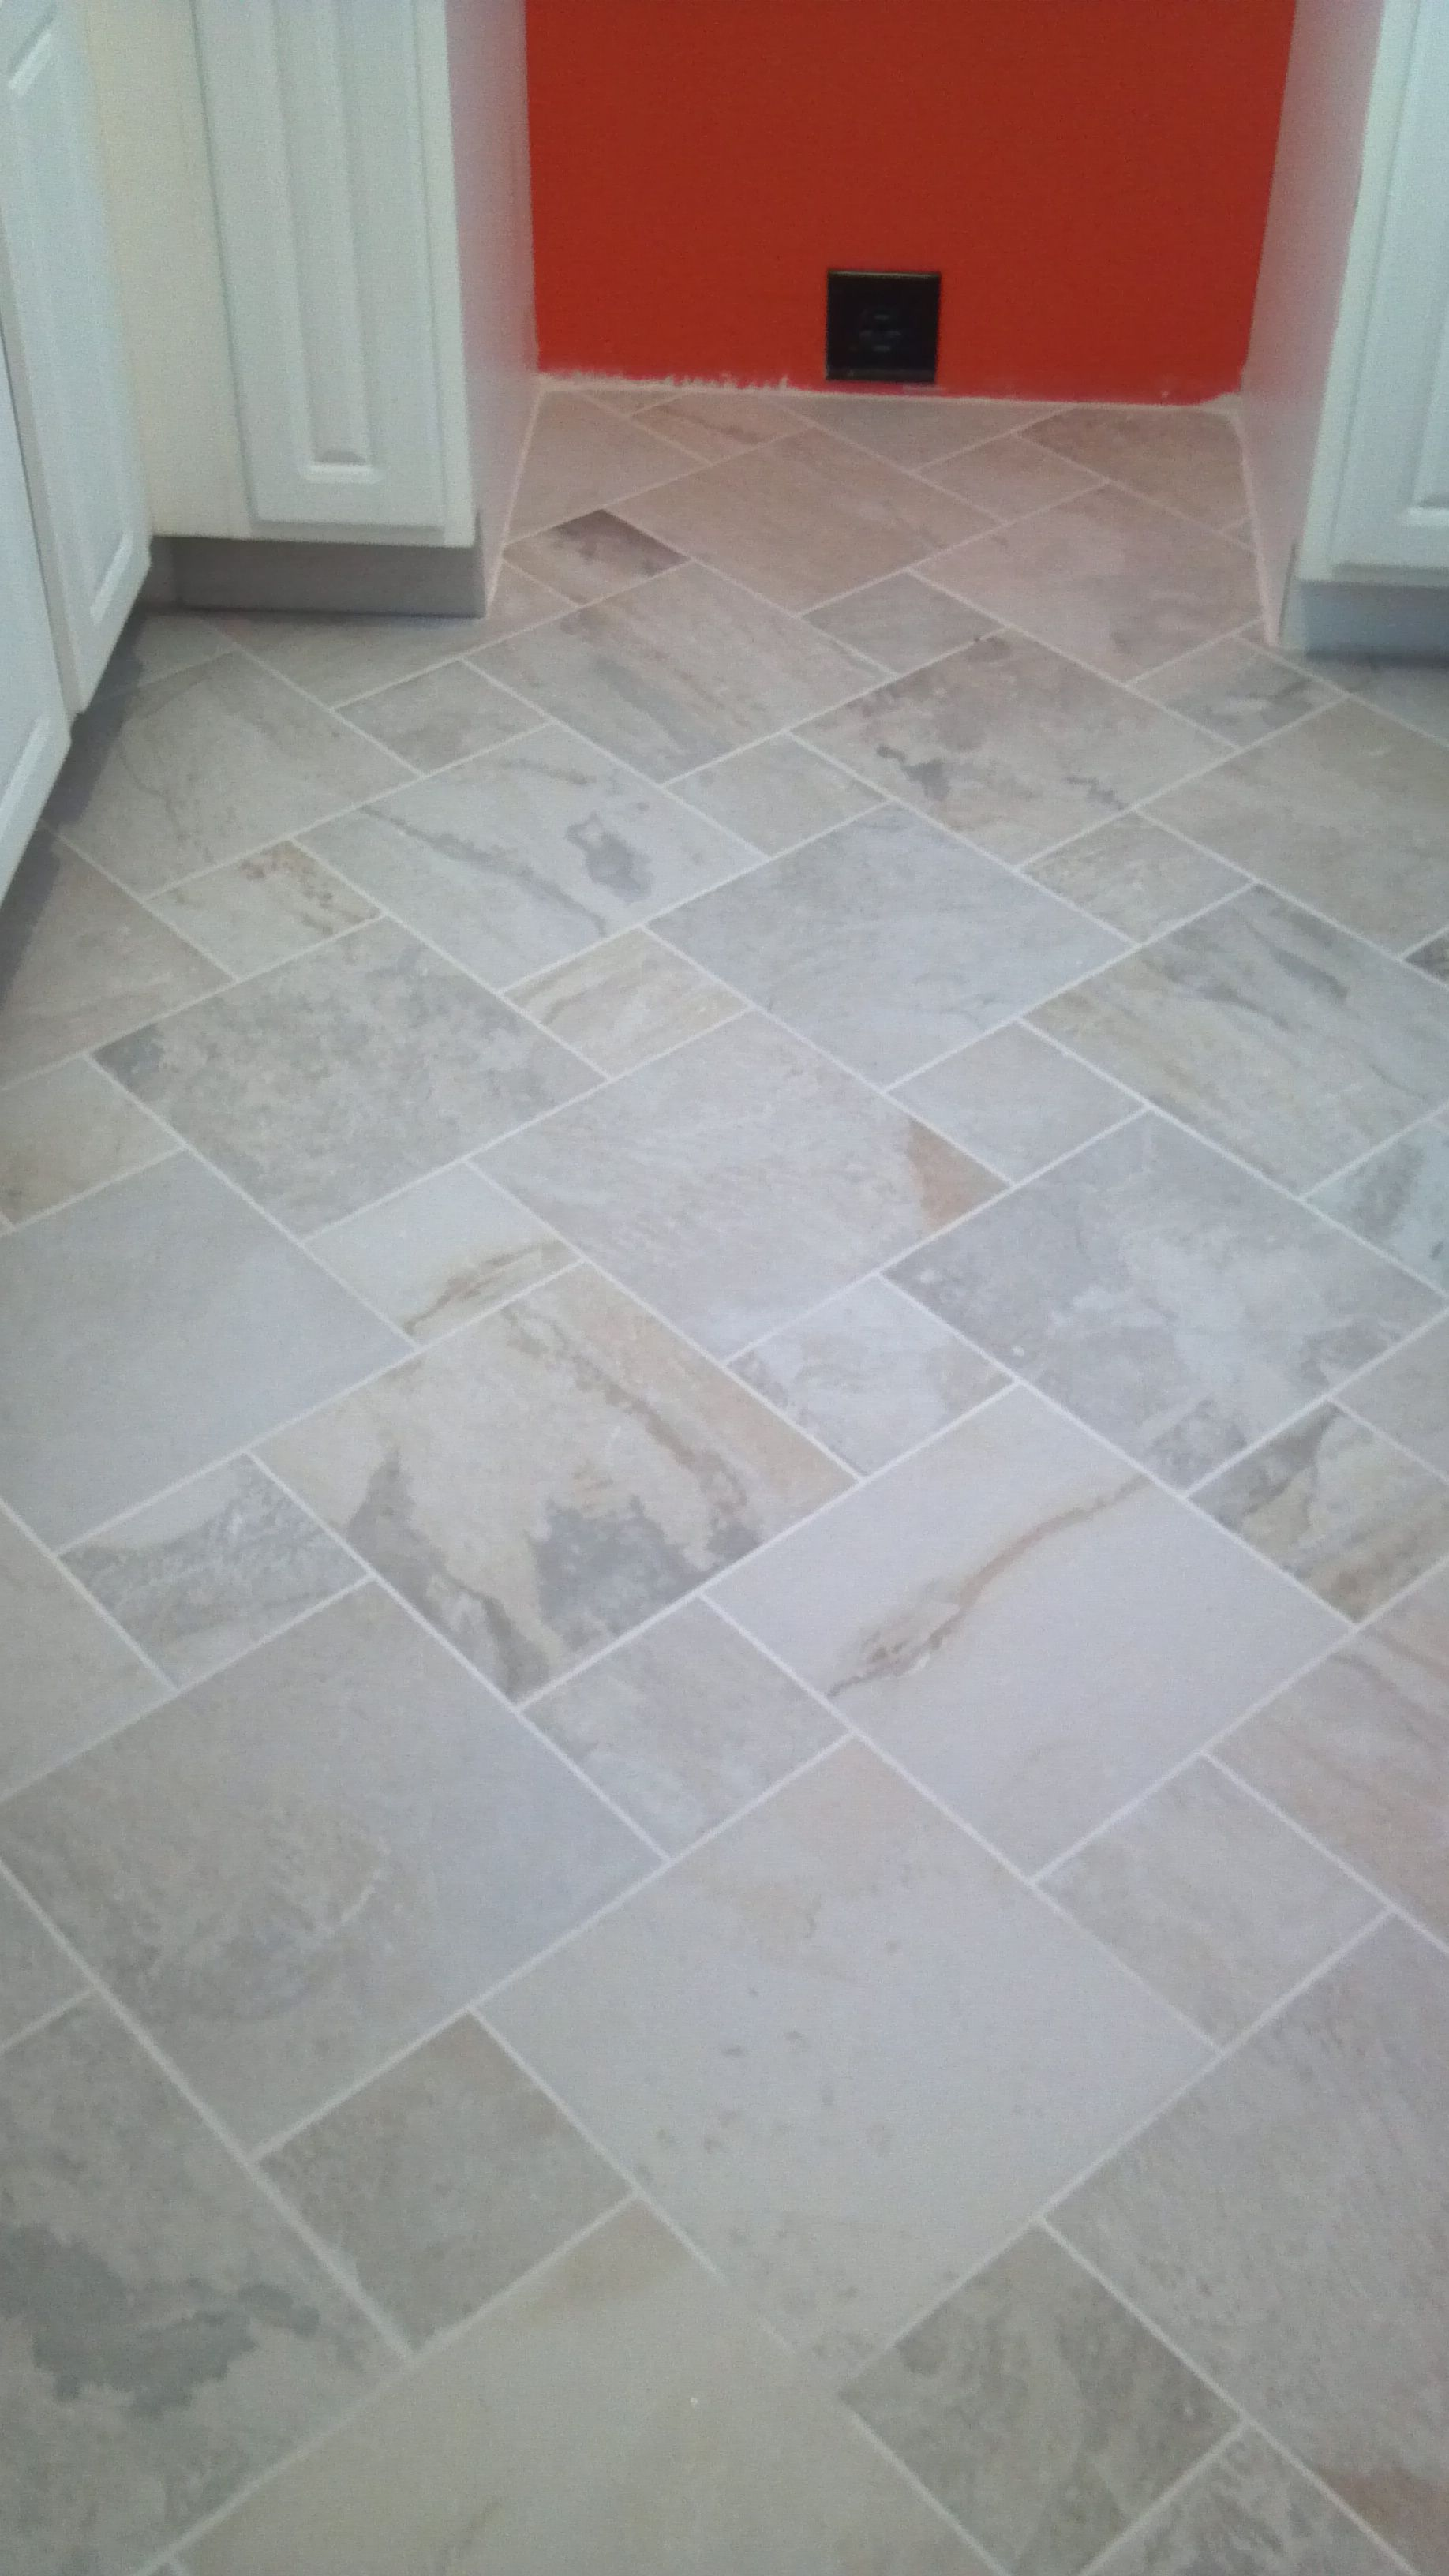 Kitchen Tiles Lowes ivetta white porcelain tile - lowes | tile | pinterest | white